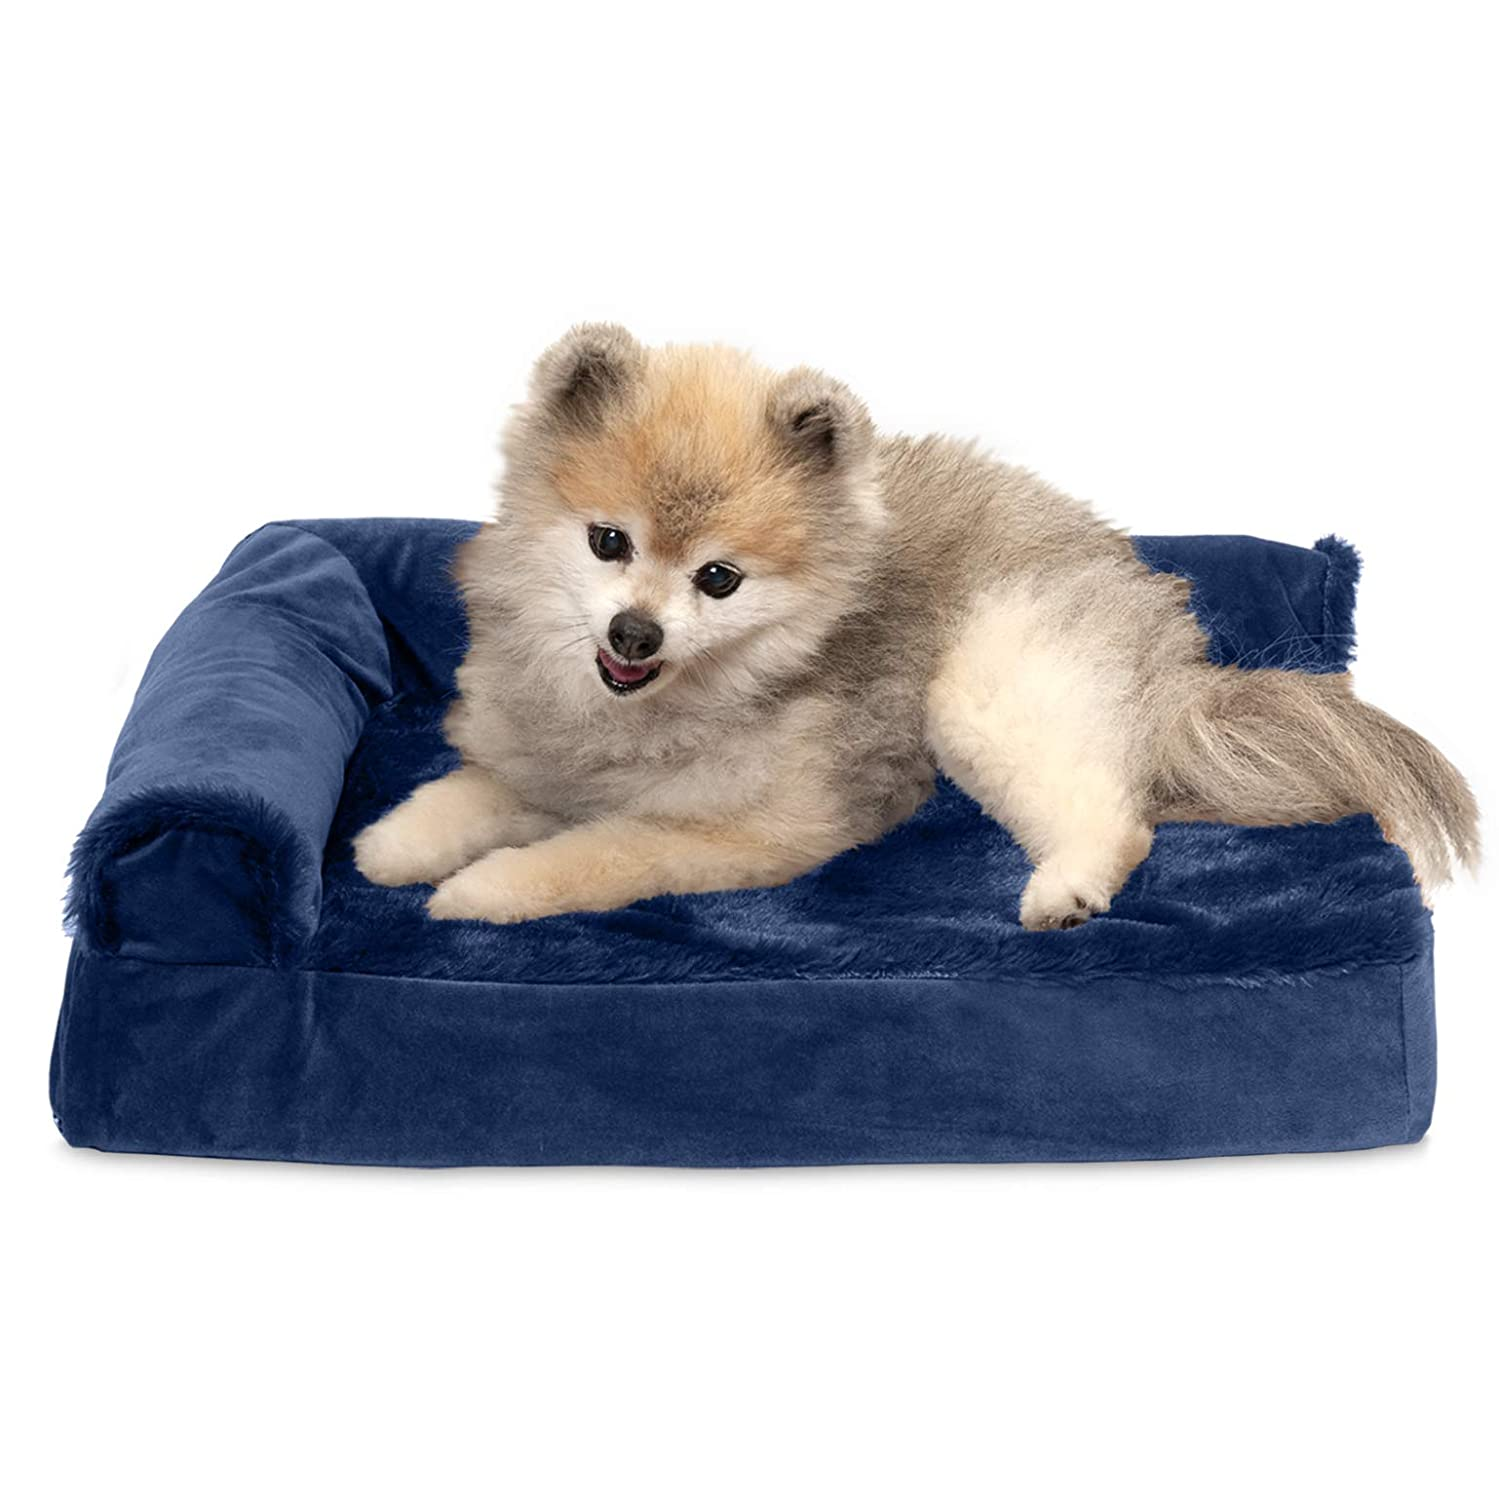 Two Sided-Deep Sapphire Small Two Sided-Deep Sapphire Small Furhaven Pet Dog Bed   Deluxe Cooling Gel Memory Foam Orthopedic Plush & Velvet L-Shaped Lounge Pet Bed for Dogs & Cats, Deep Sapphire, Small